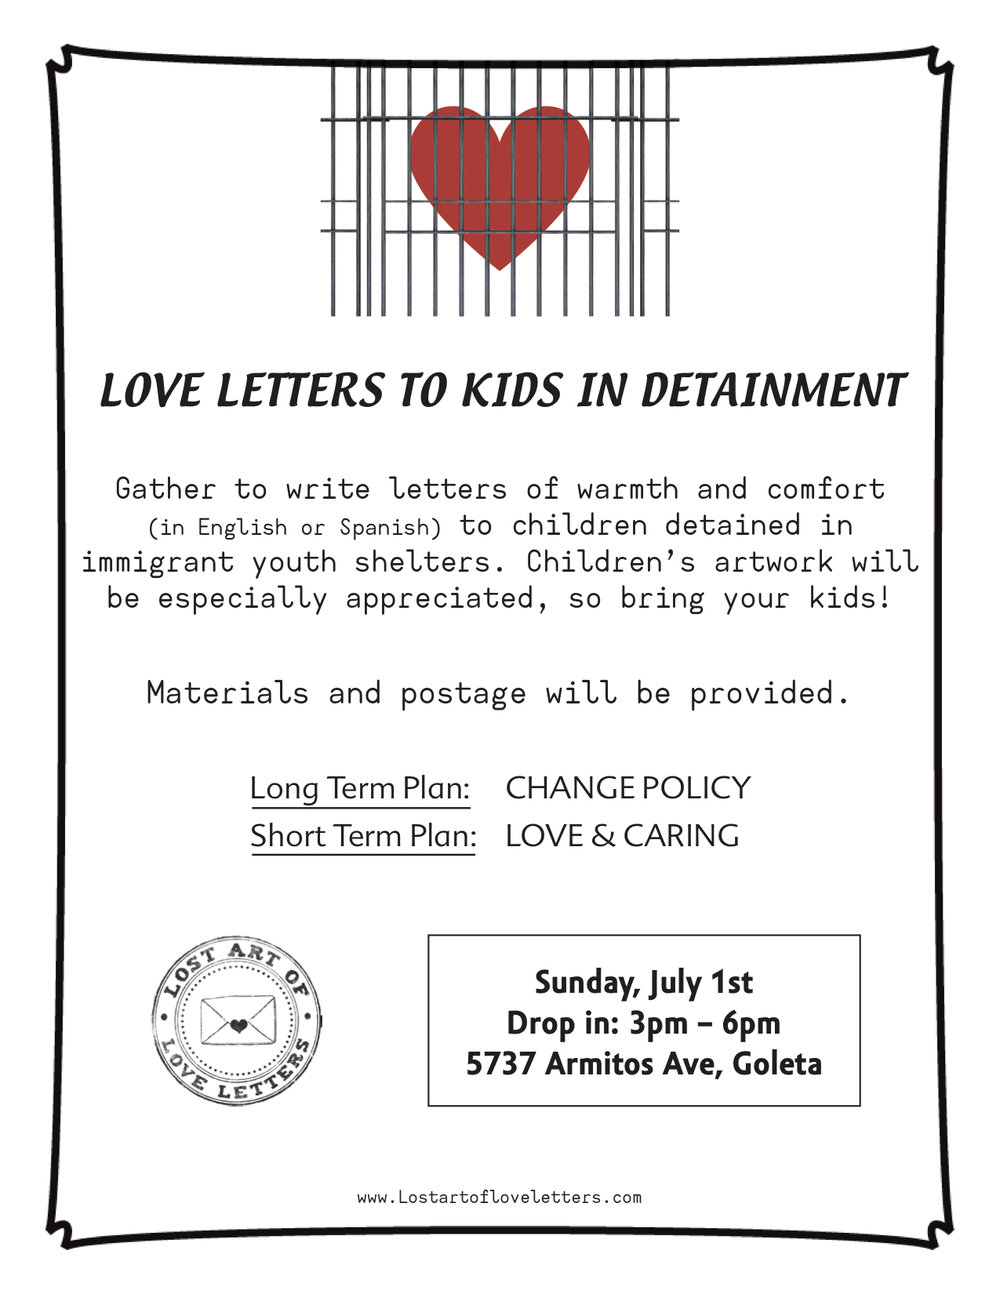 A. LOVE LETTERS TO KIDS IN DETAINMENT-4.jpg